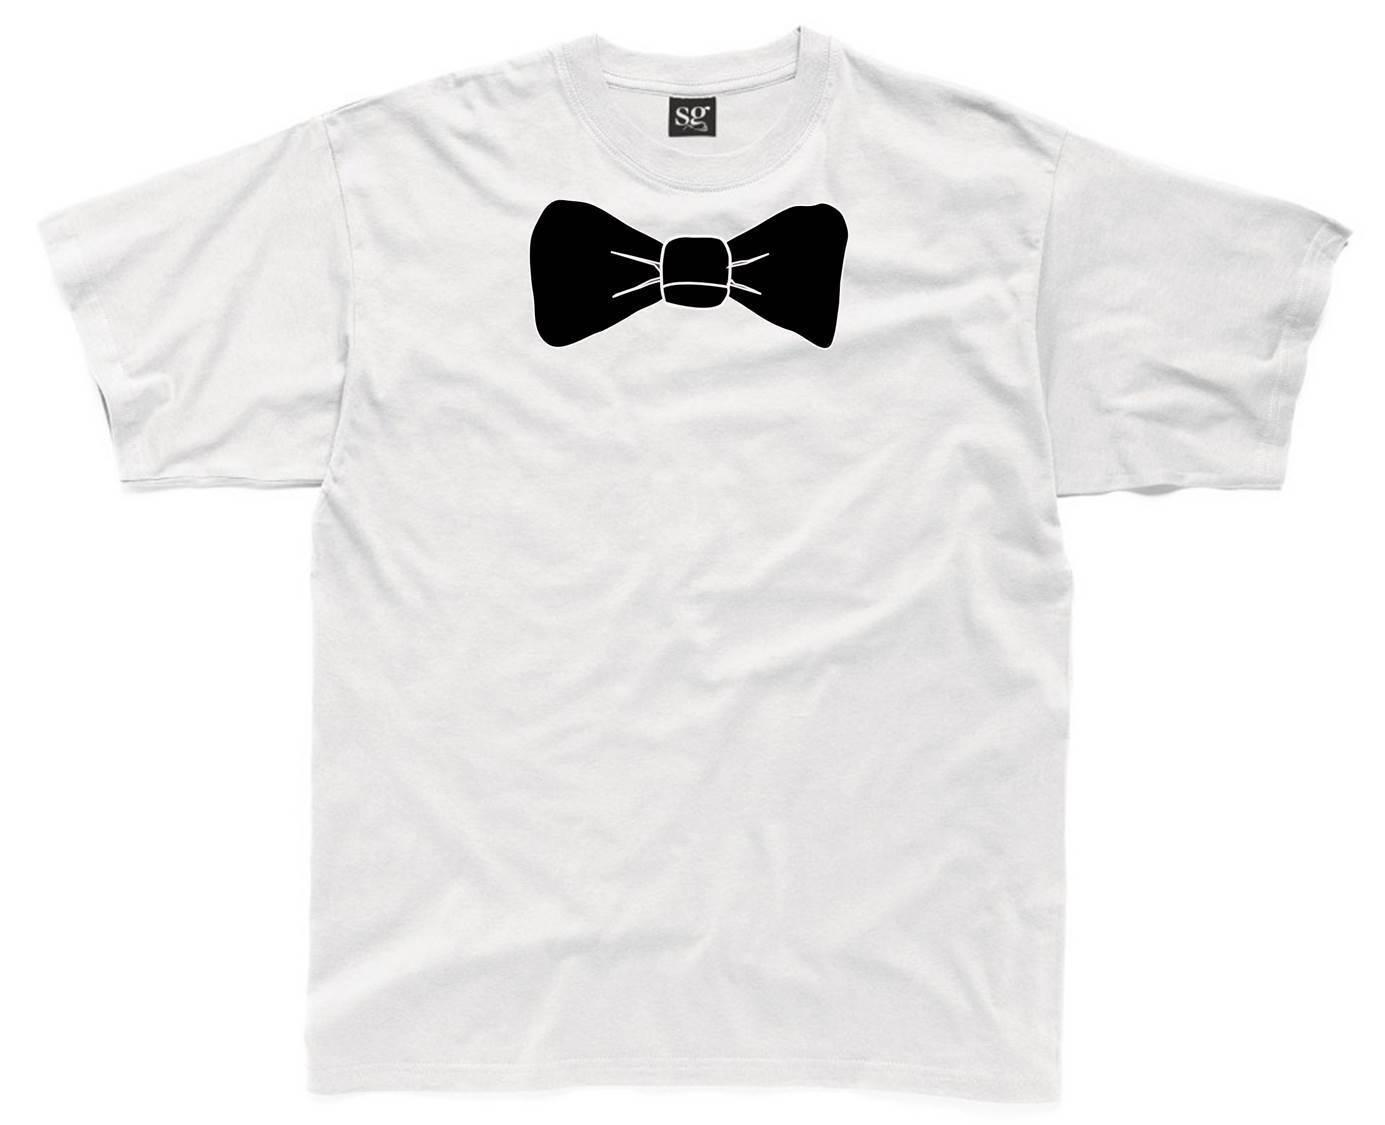 BOW TIE Mens T Shirt S 3XL White Funny Printed Novelty Costume Shirt Tuxedo  The New Short Sleeve 268d36097